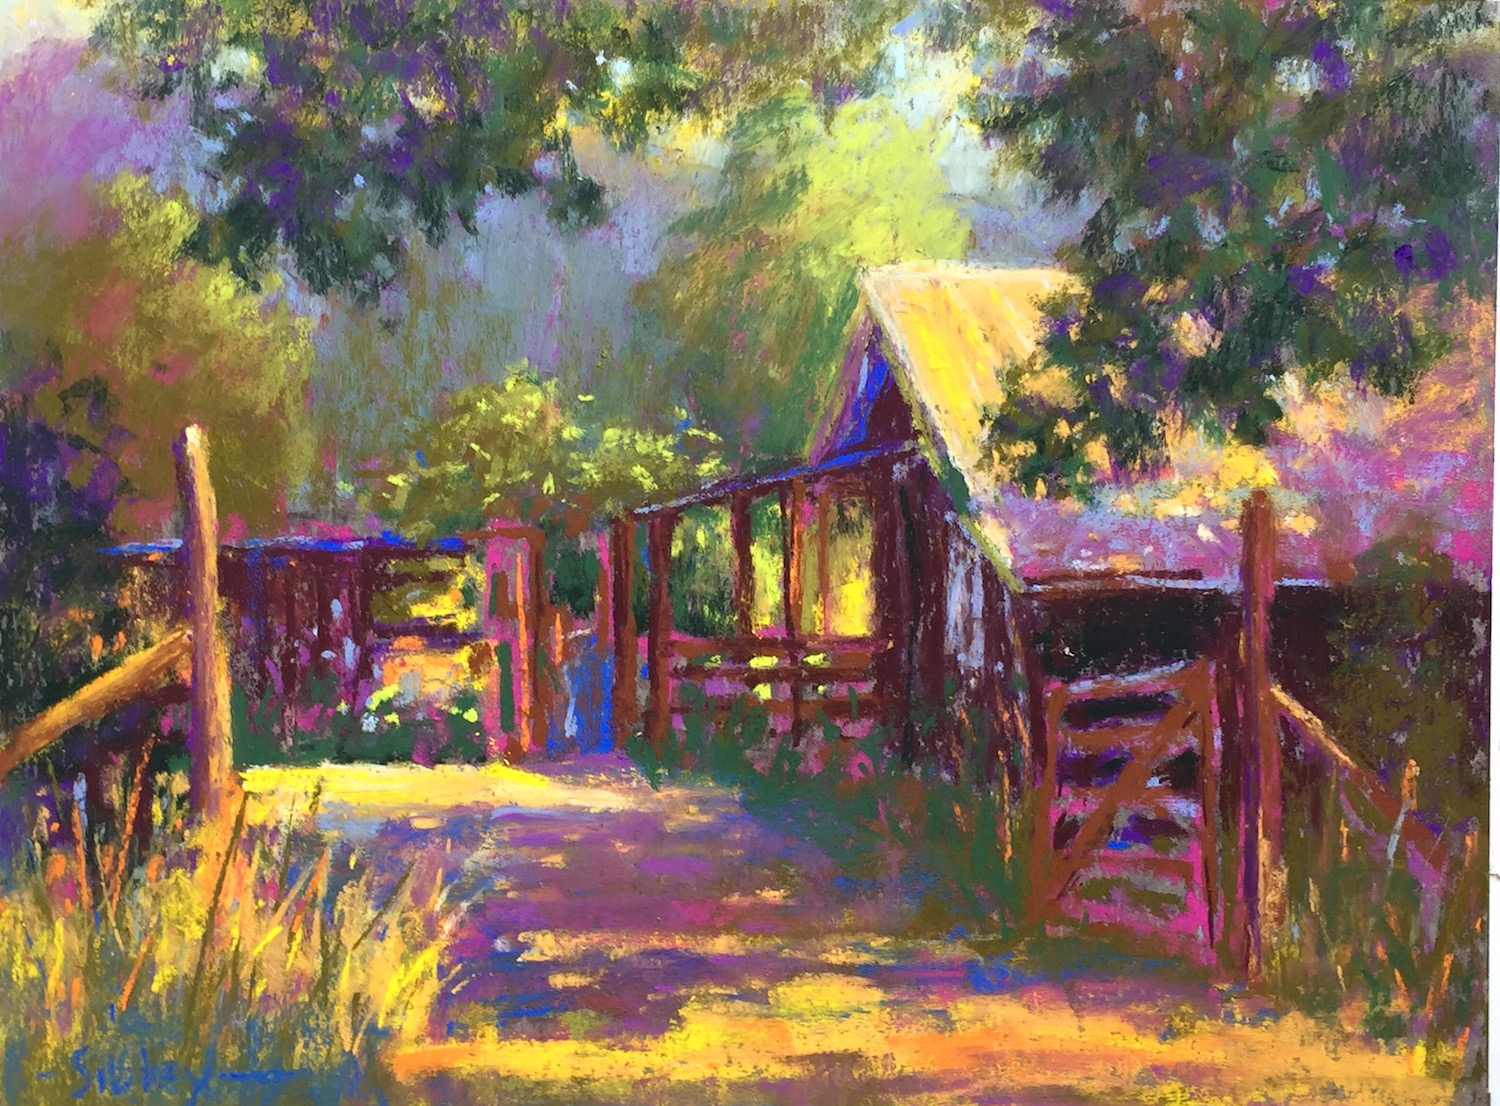 "Tweaking my plein air painting in the studio: Gail Sibley, ""Shepherd Hills Hideaway,"" Great American pastels on Wallis Belgian Mist mounted paper, 9 x 12 in. Available."